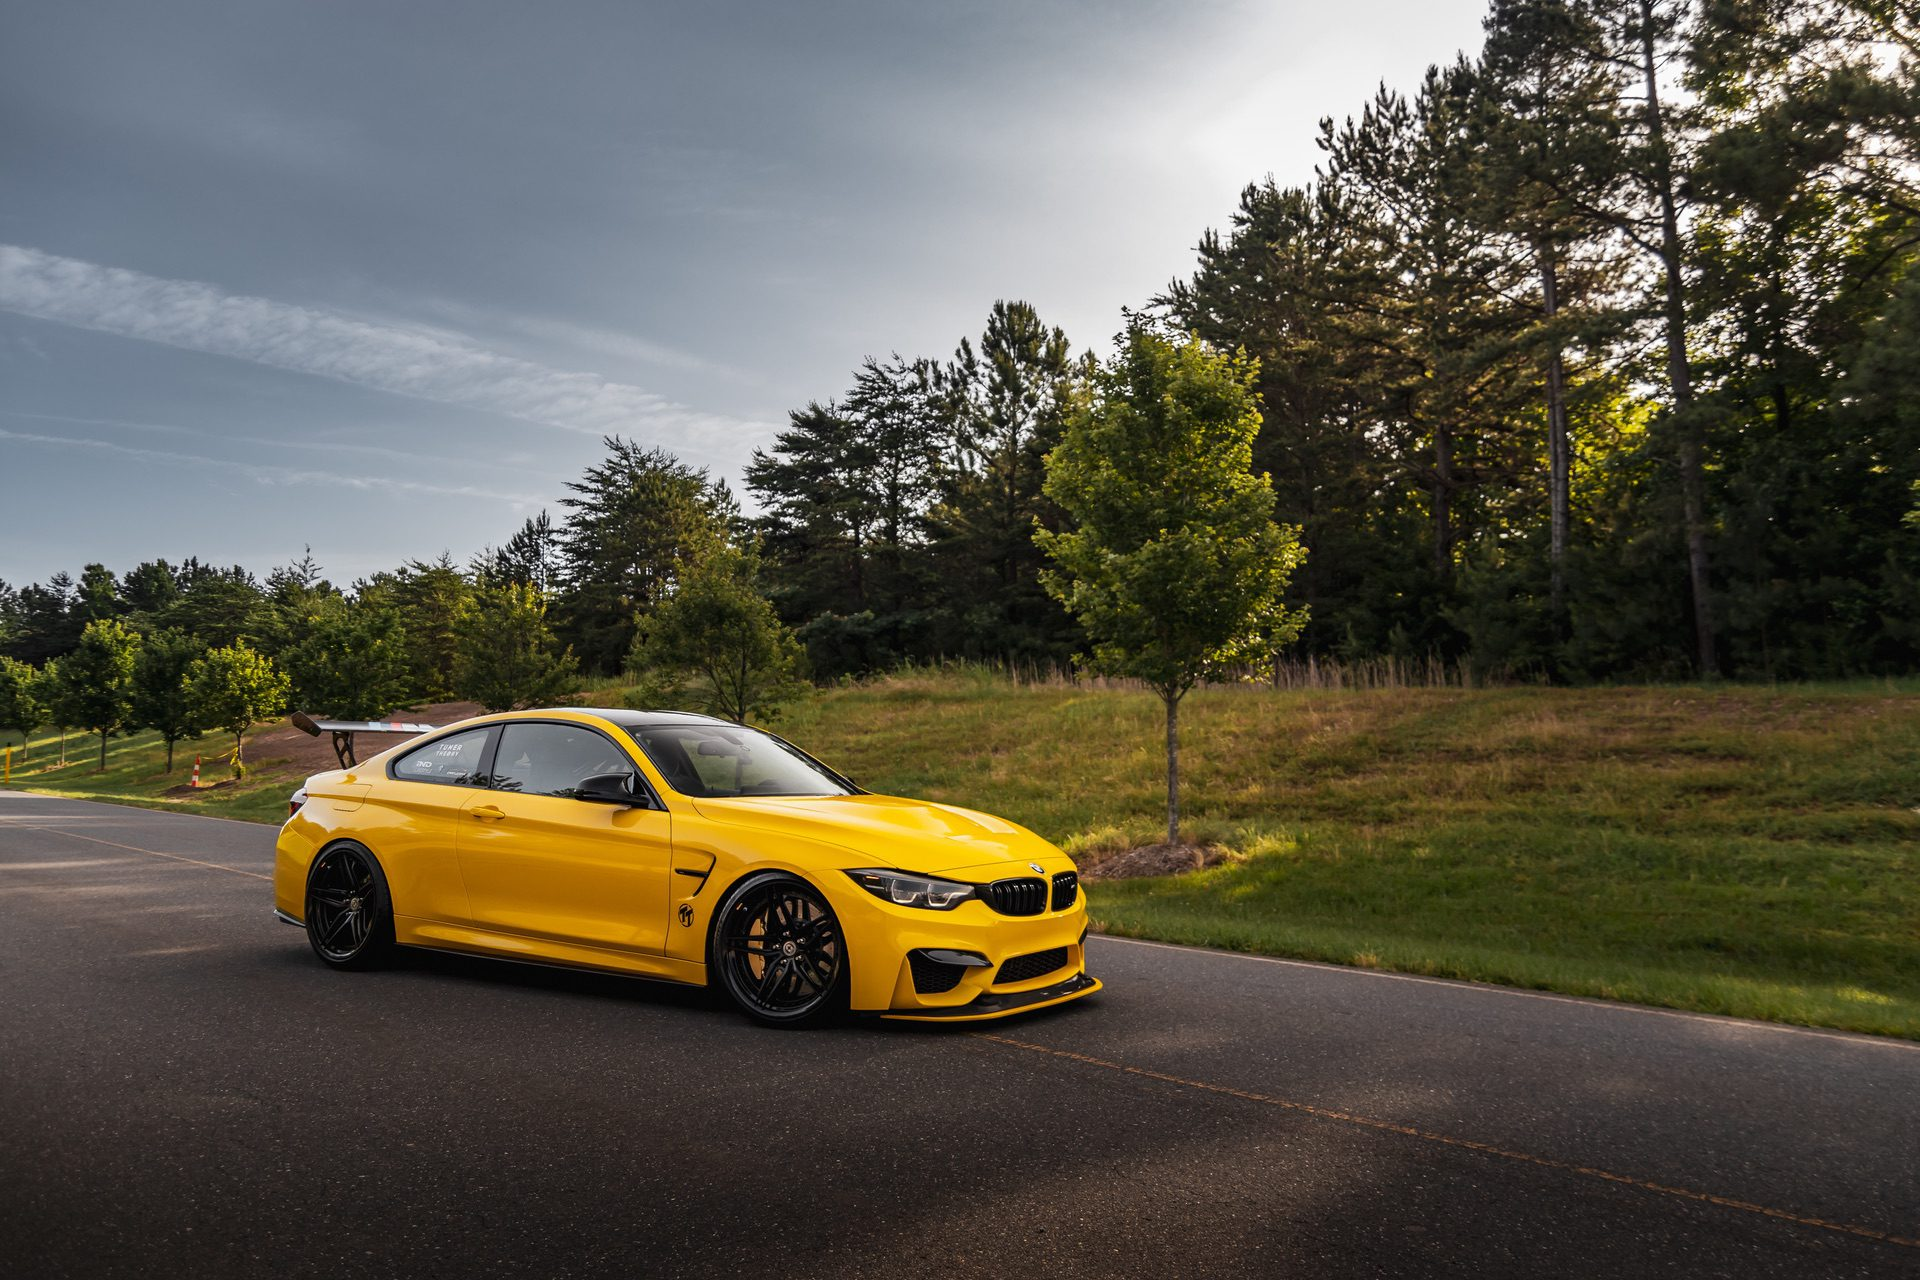 BMW M4 GTS yellow color 31